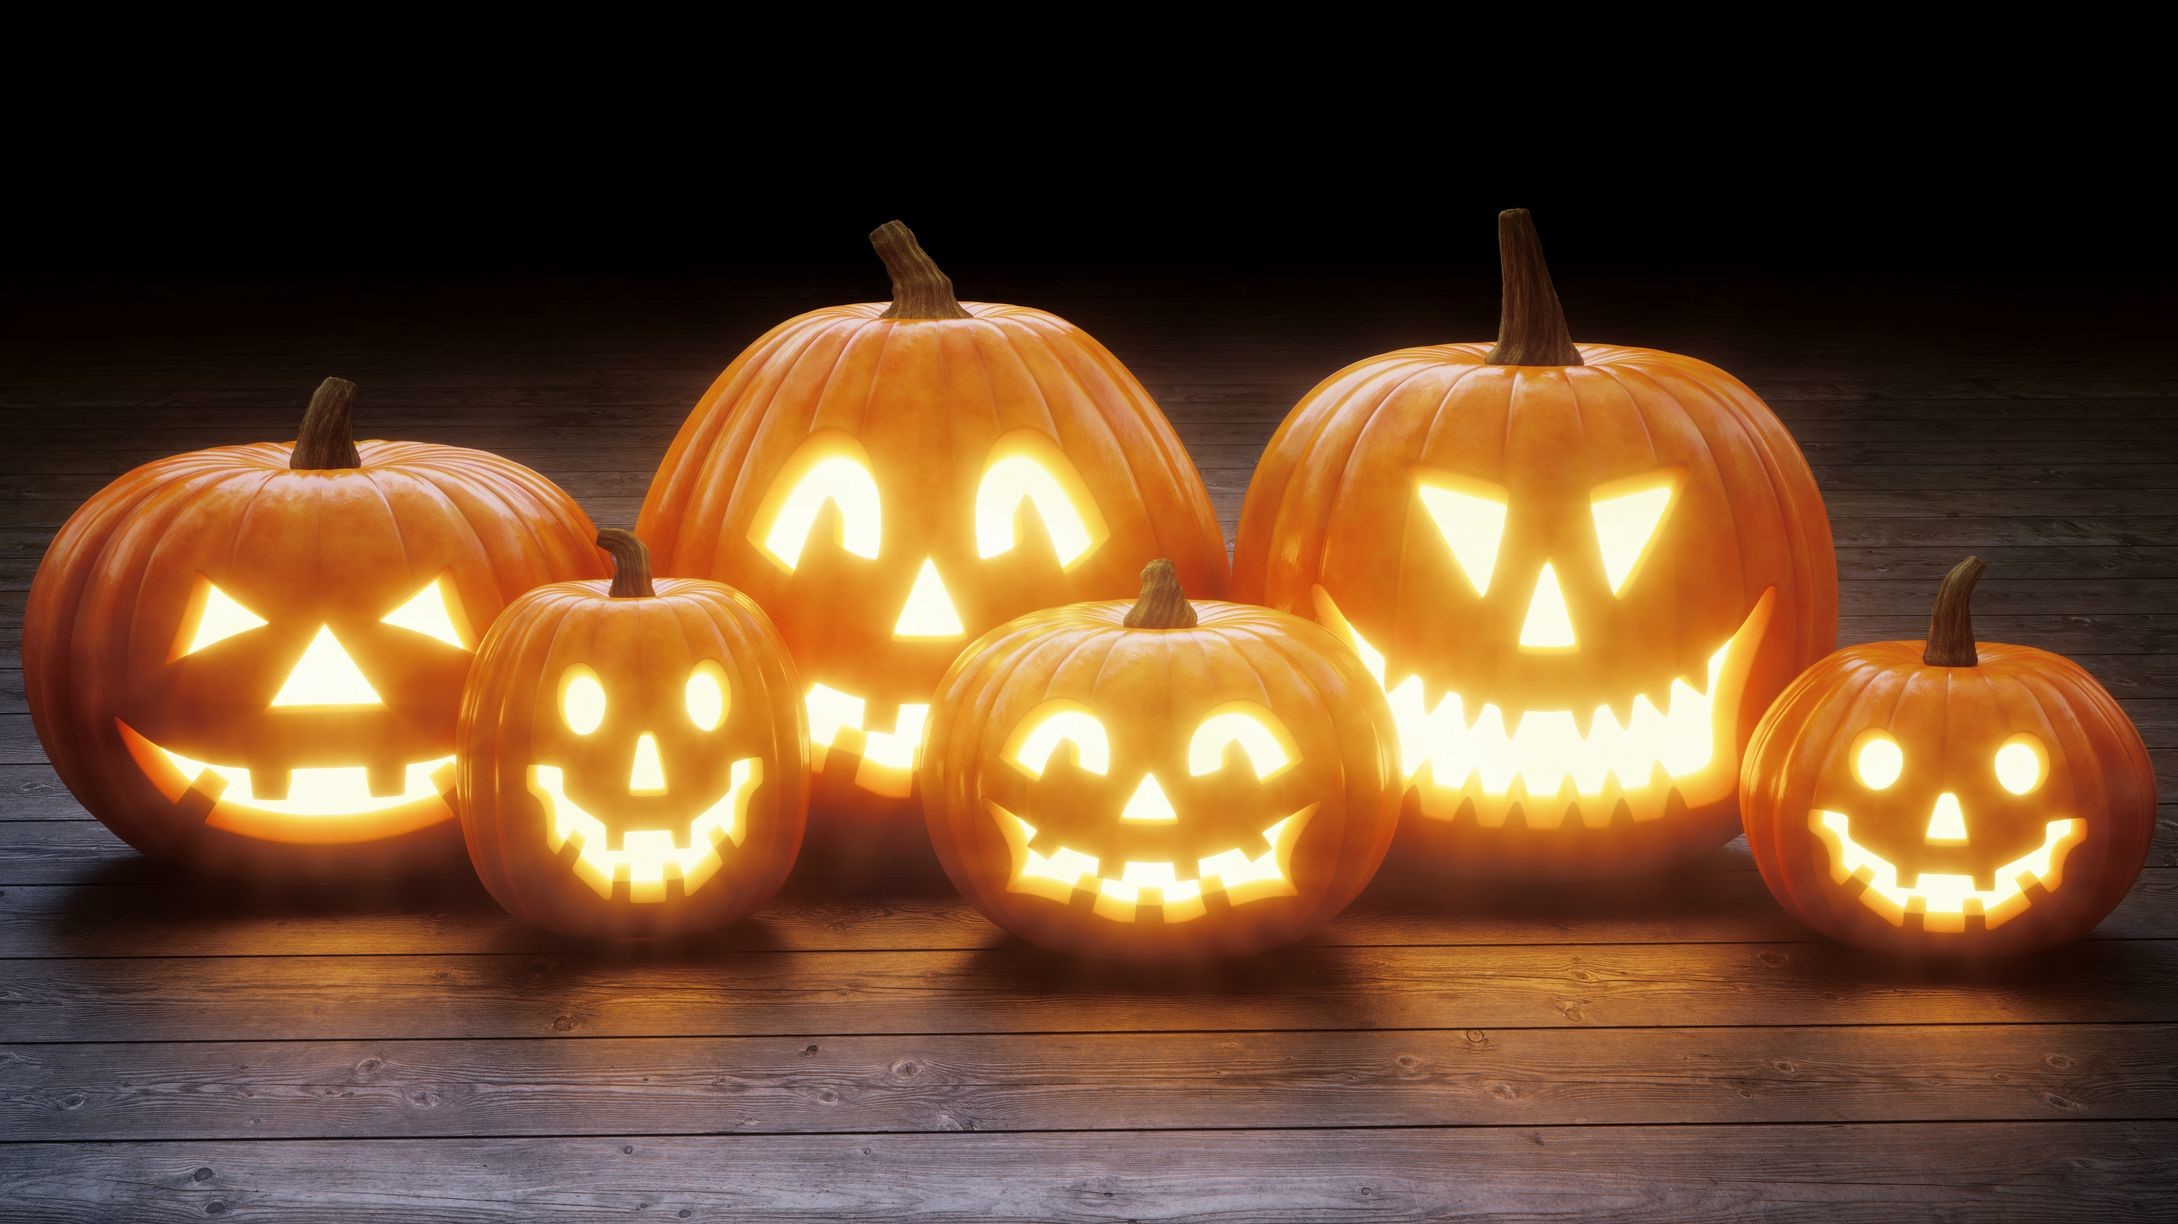 What can you do with pumpkin guts?